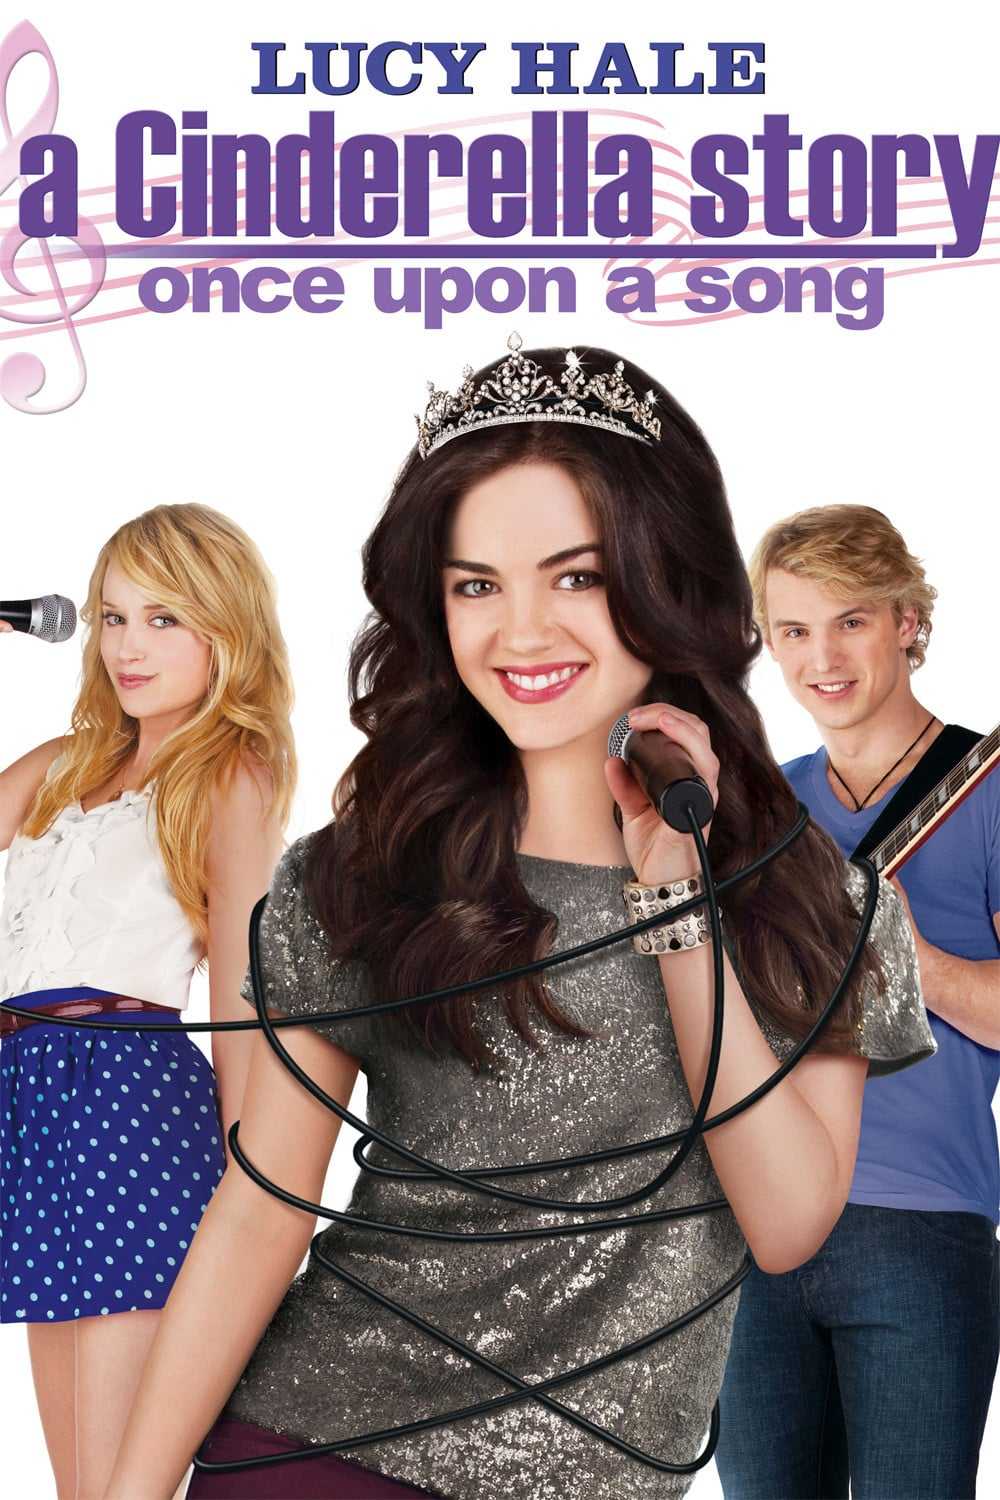 A Cinderella Story: Once Upon a Song kapak